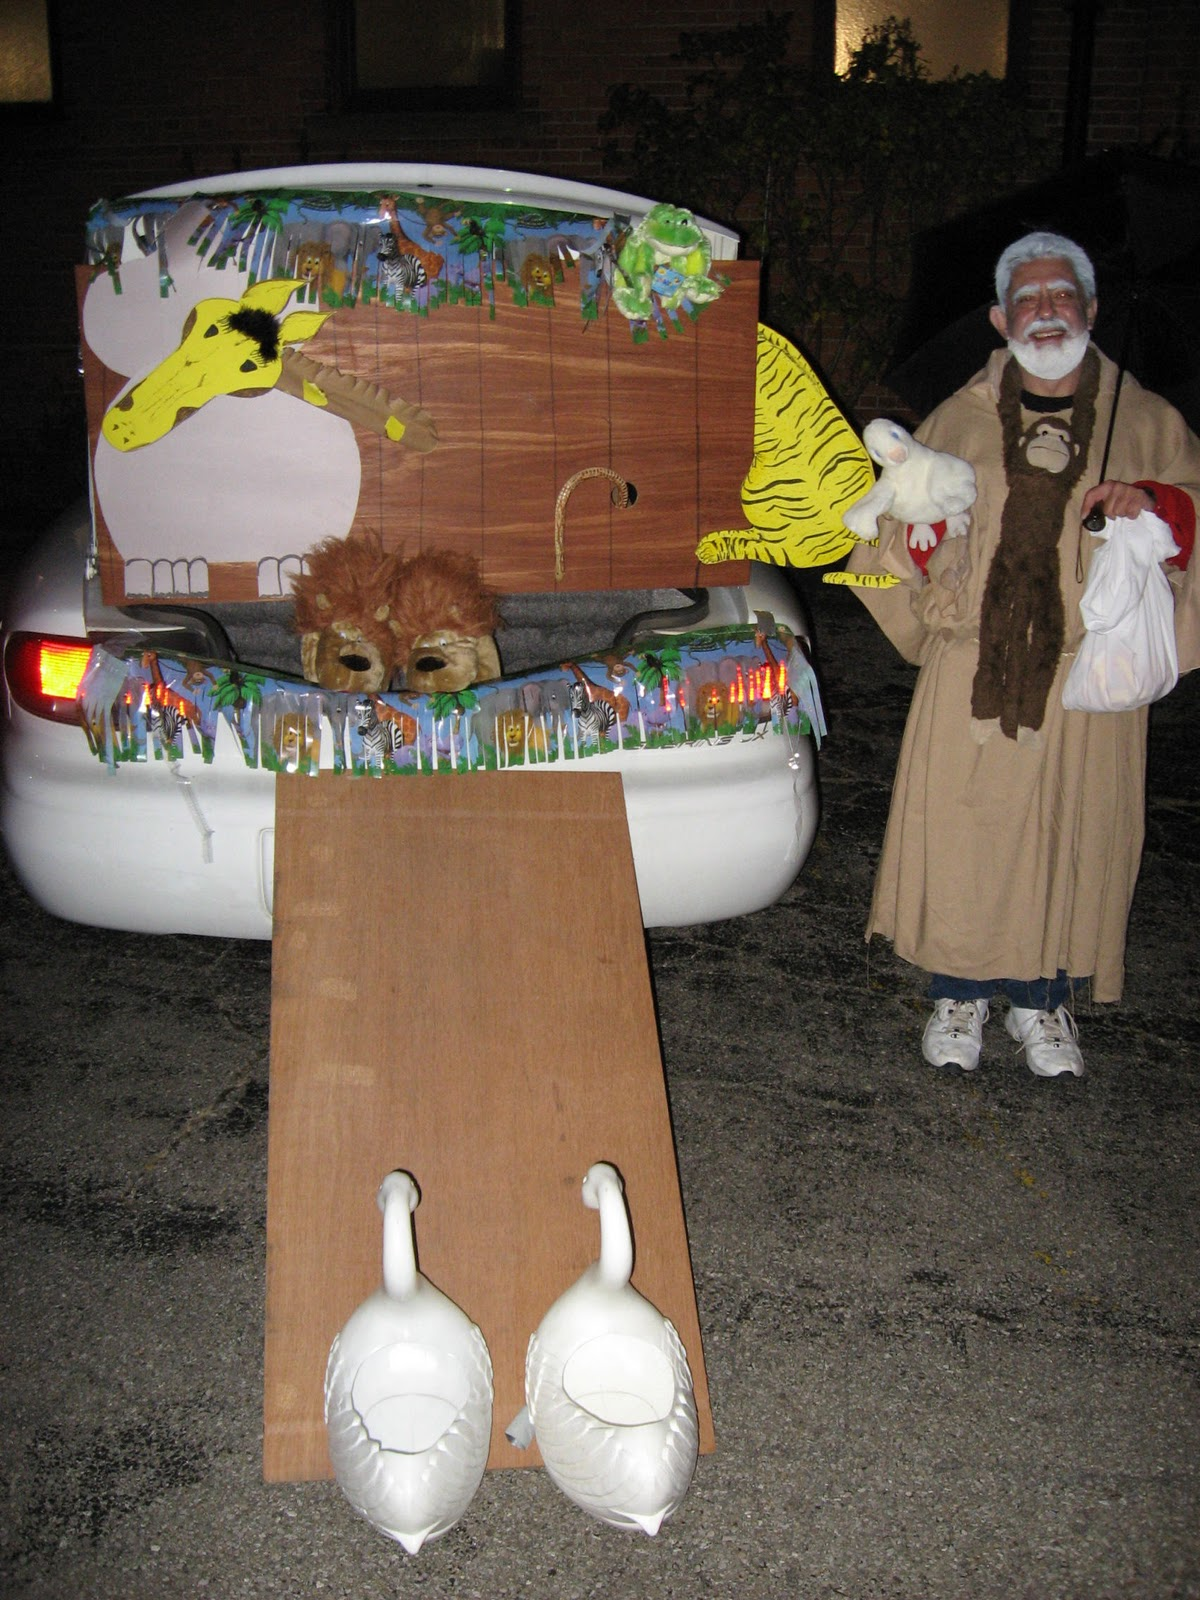 Simply Mommy: More Bible Costumes / Trunk or Treat Ideas that I like!